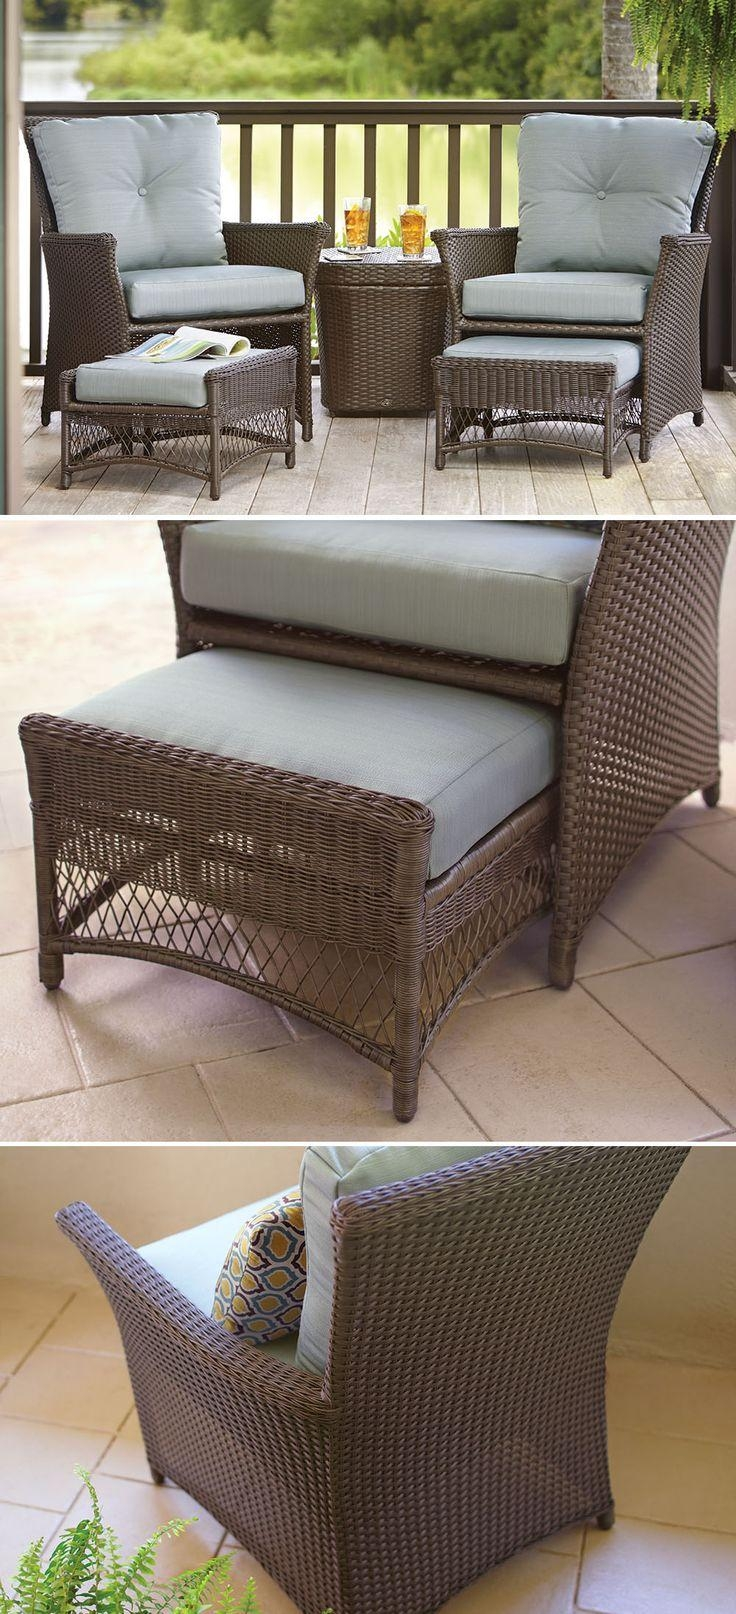 Best 25+ Deck Furniture Ideas On Pinterest | Outdoor Furniture With Patio Sofa Tables (View 10 of 20)